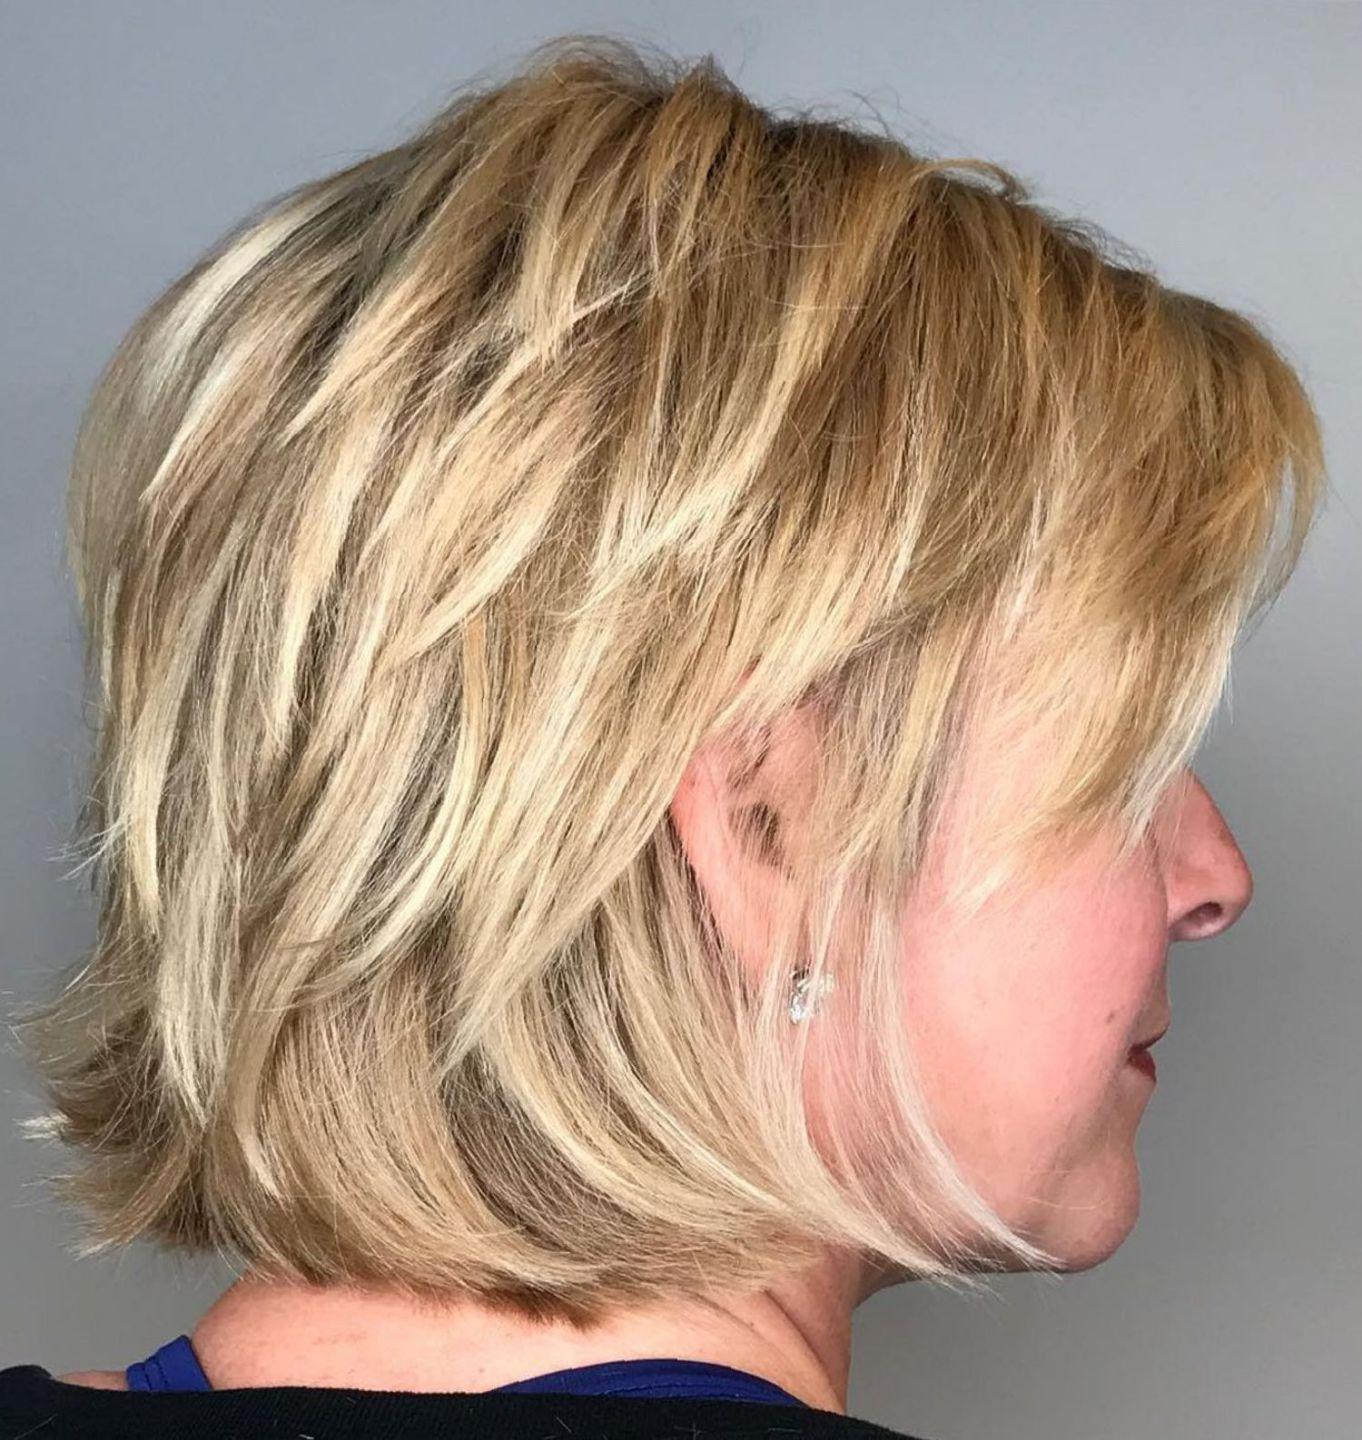 Pin By Martha Rodriquez On Hair Styles In 2020 Short Shag Hairstyles Shag Hairstyles Short Shag Haircuts